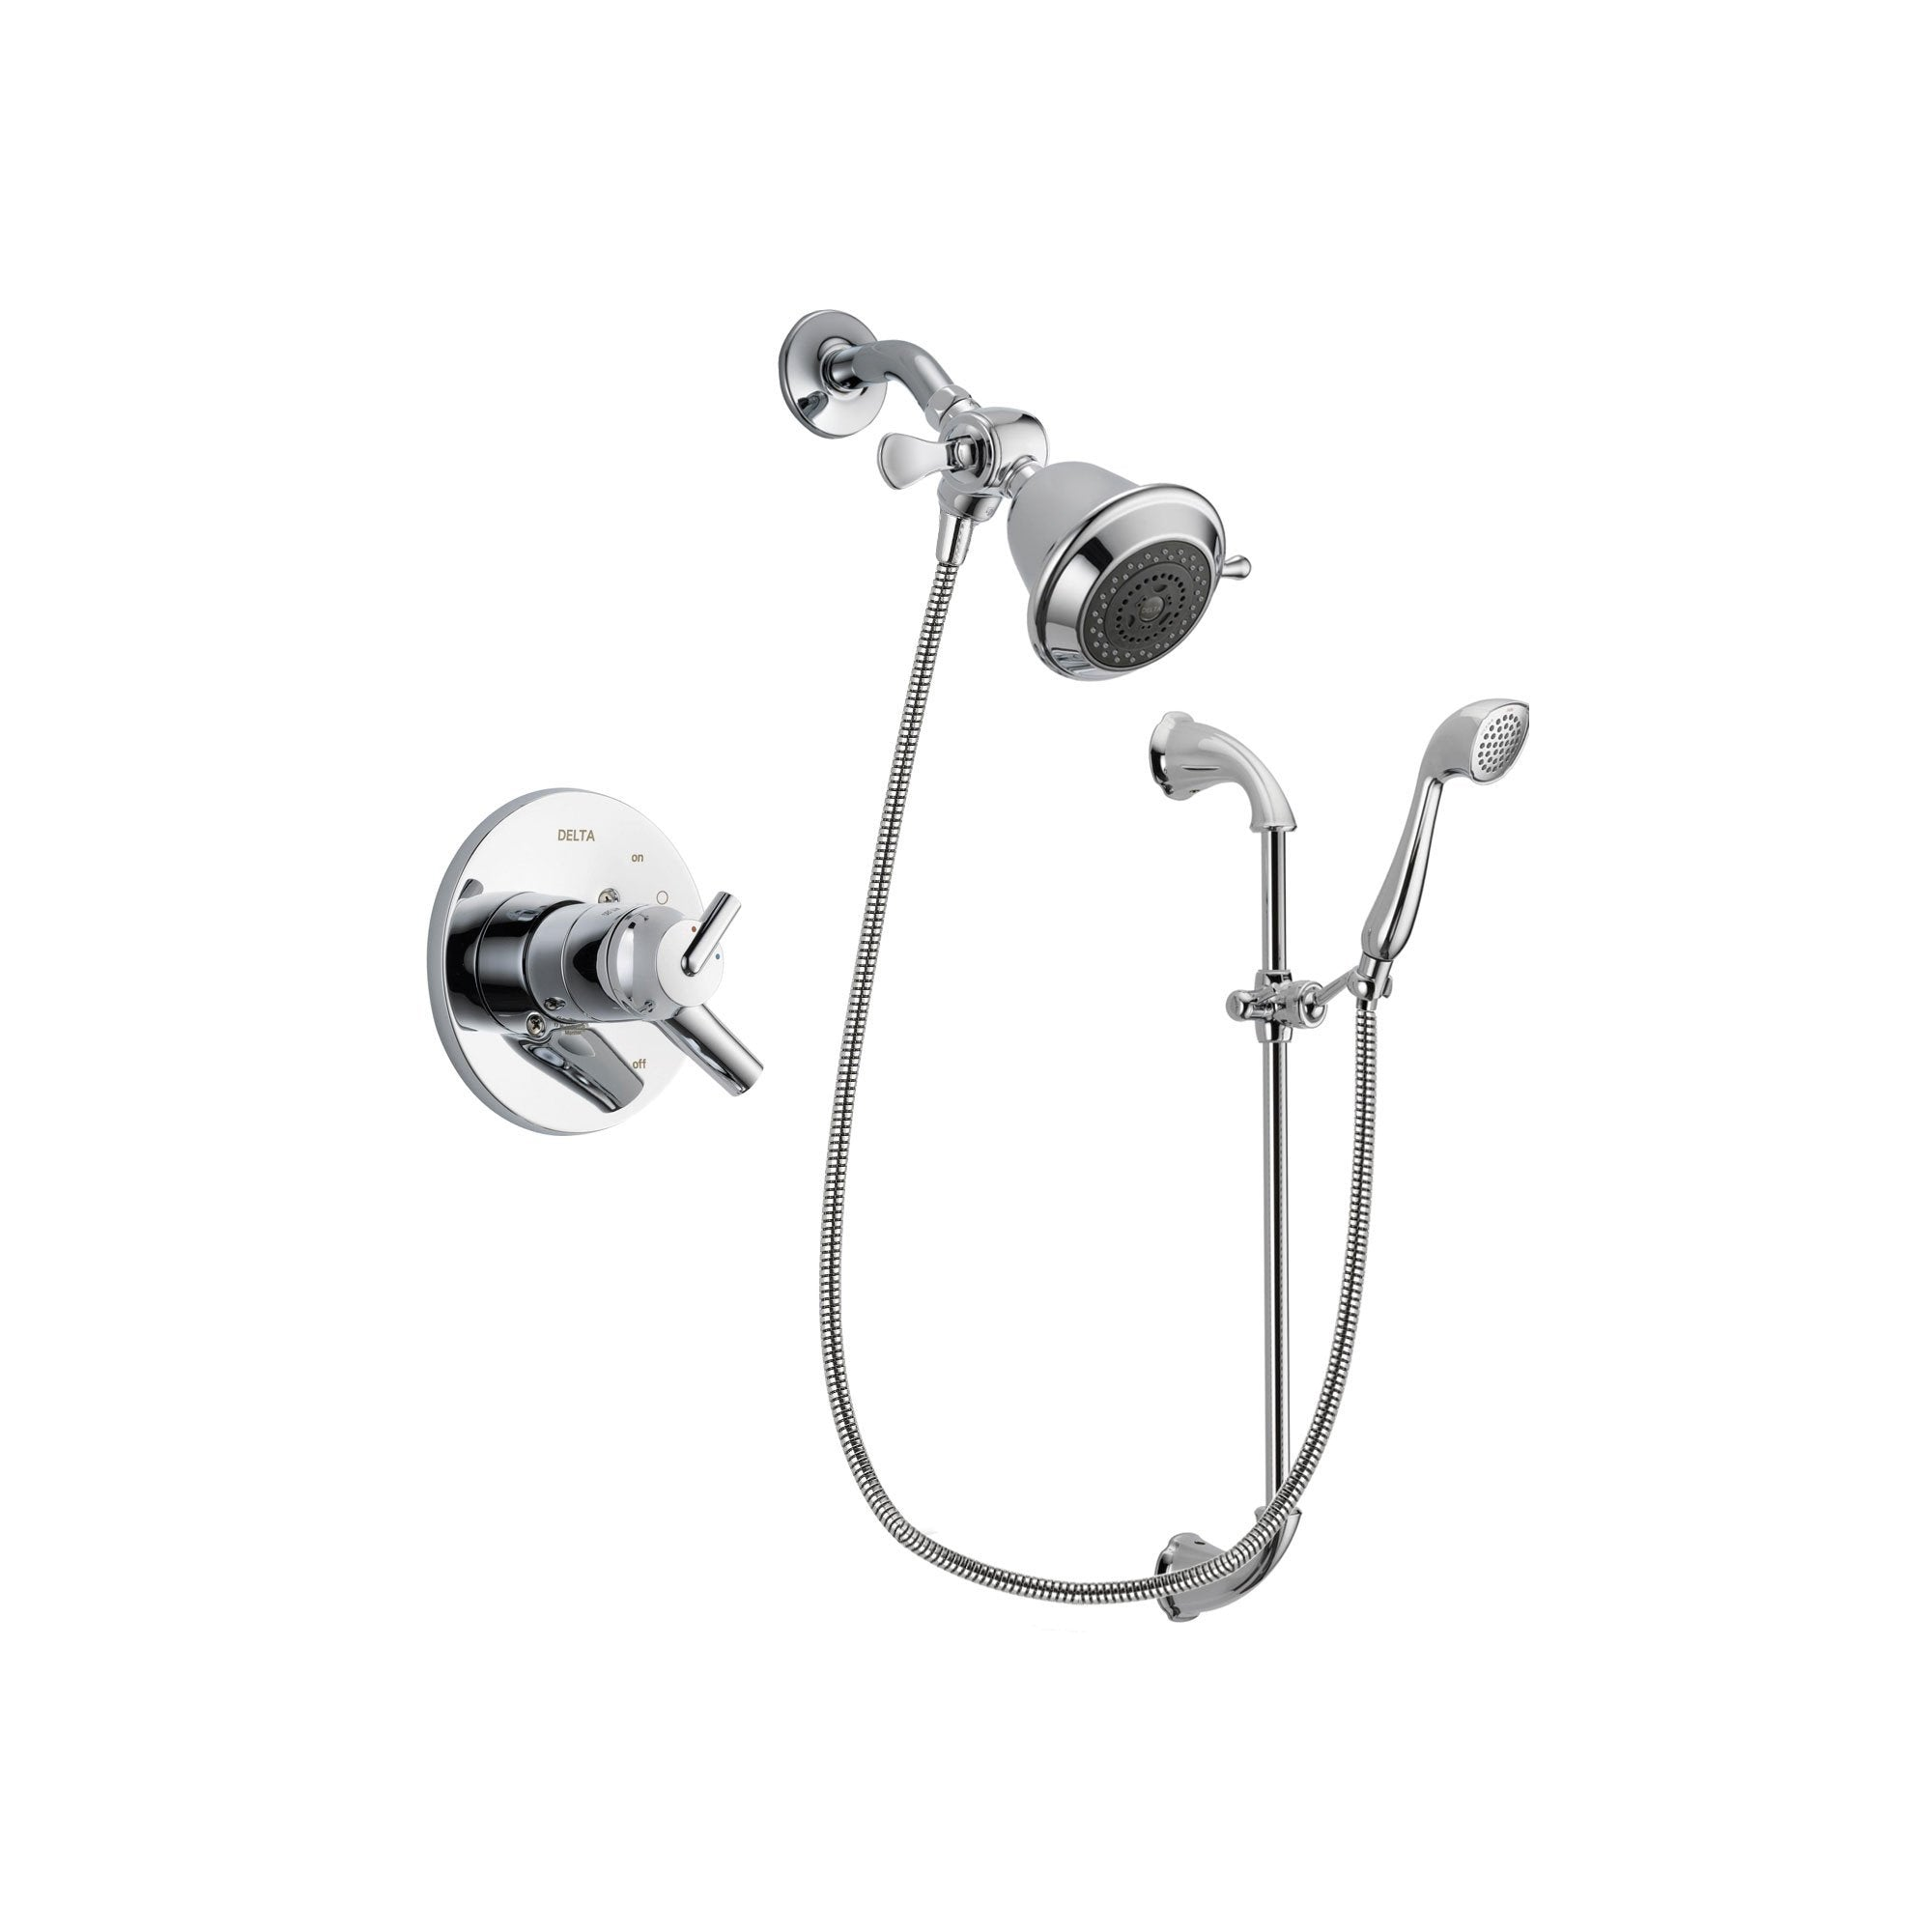 Delta Trinsic Chrome Shower Faucet System w/ Showerhead and Hand Shower DSP0856V